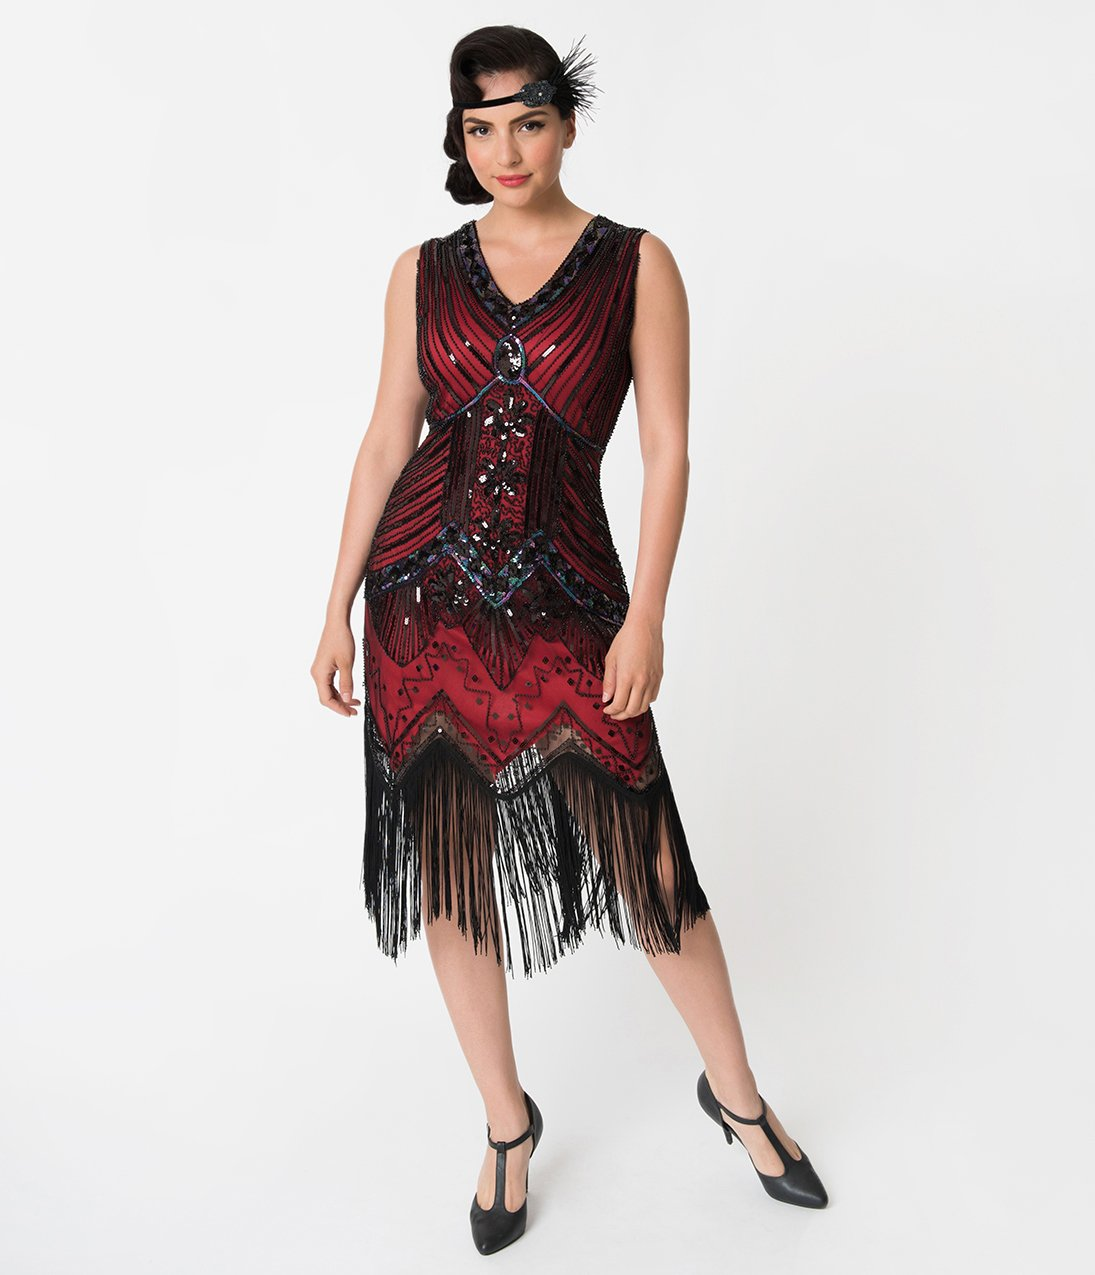 f95152c8f3 Adult Veronique Red Sequined Fringe Flapper Dress - The Costume Shoppe